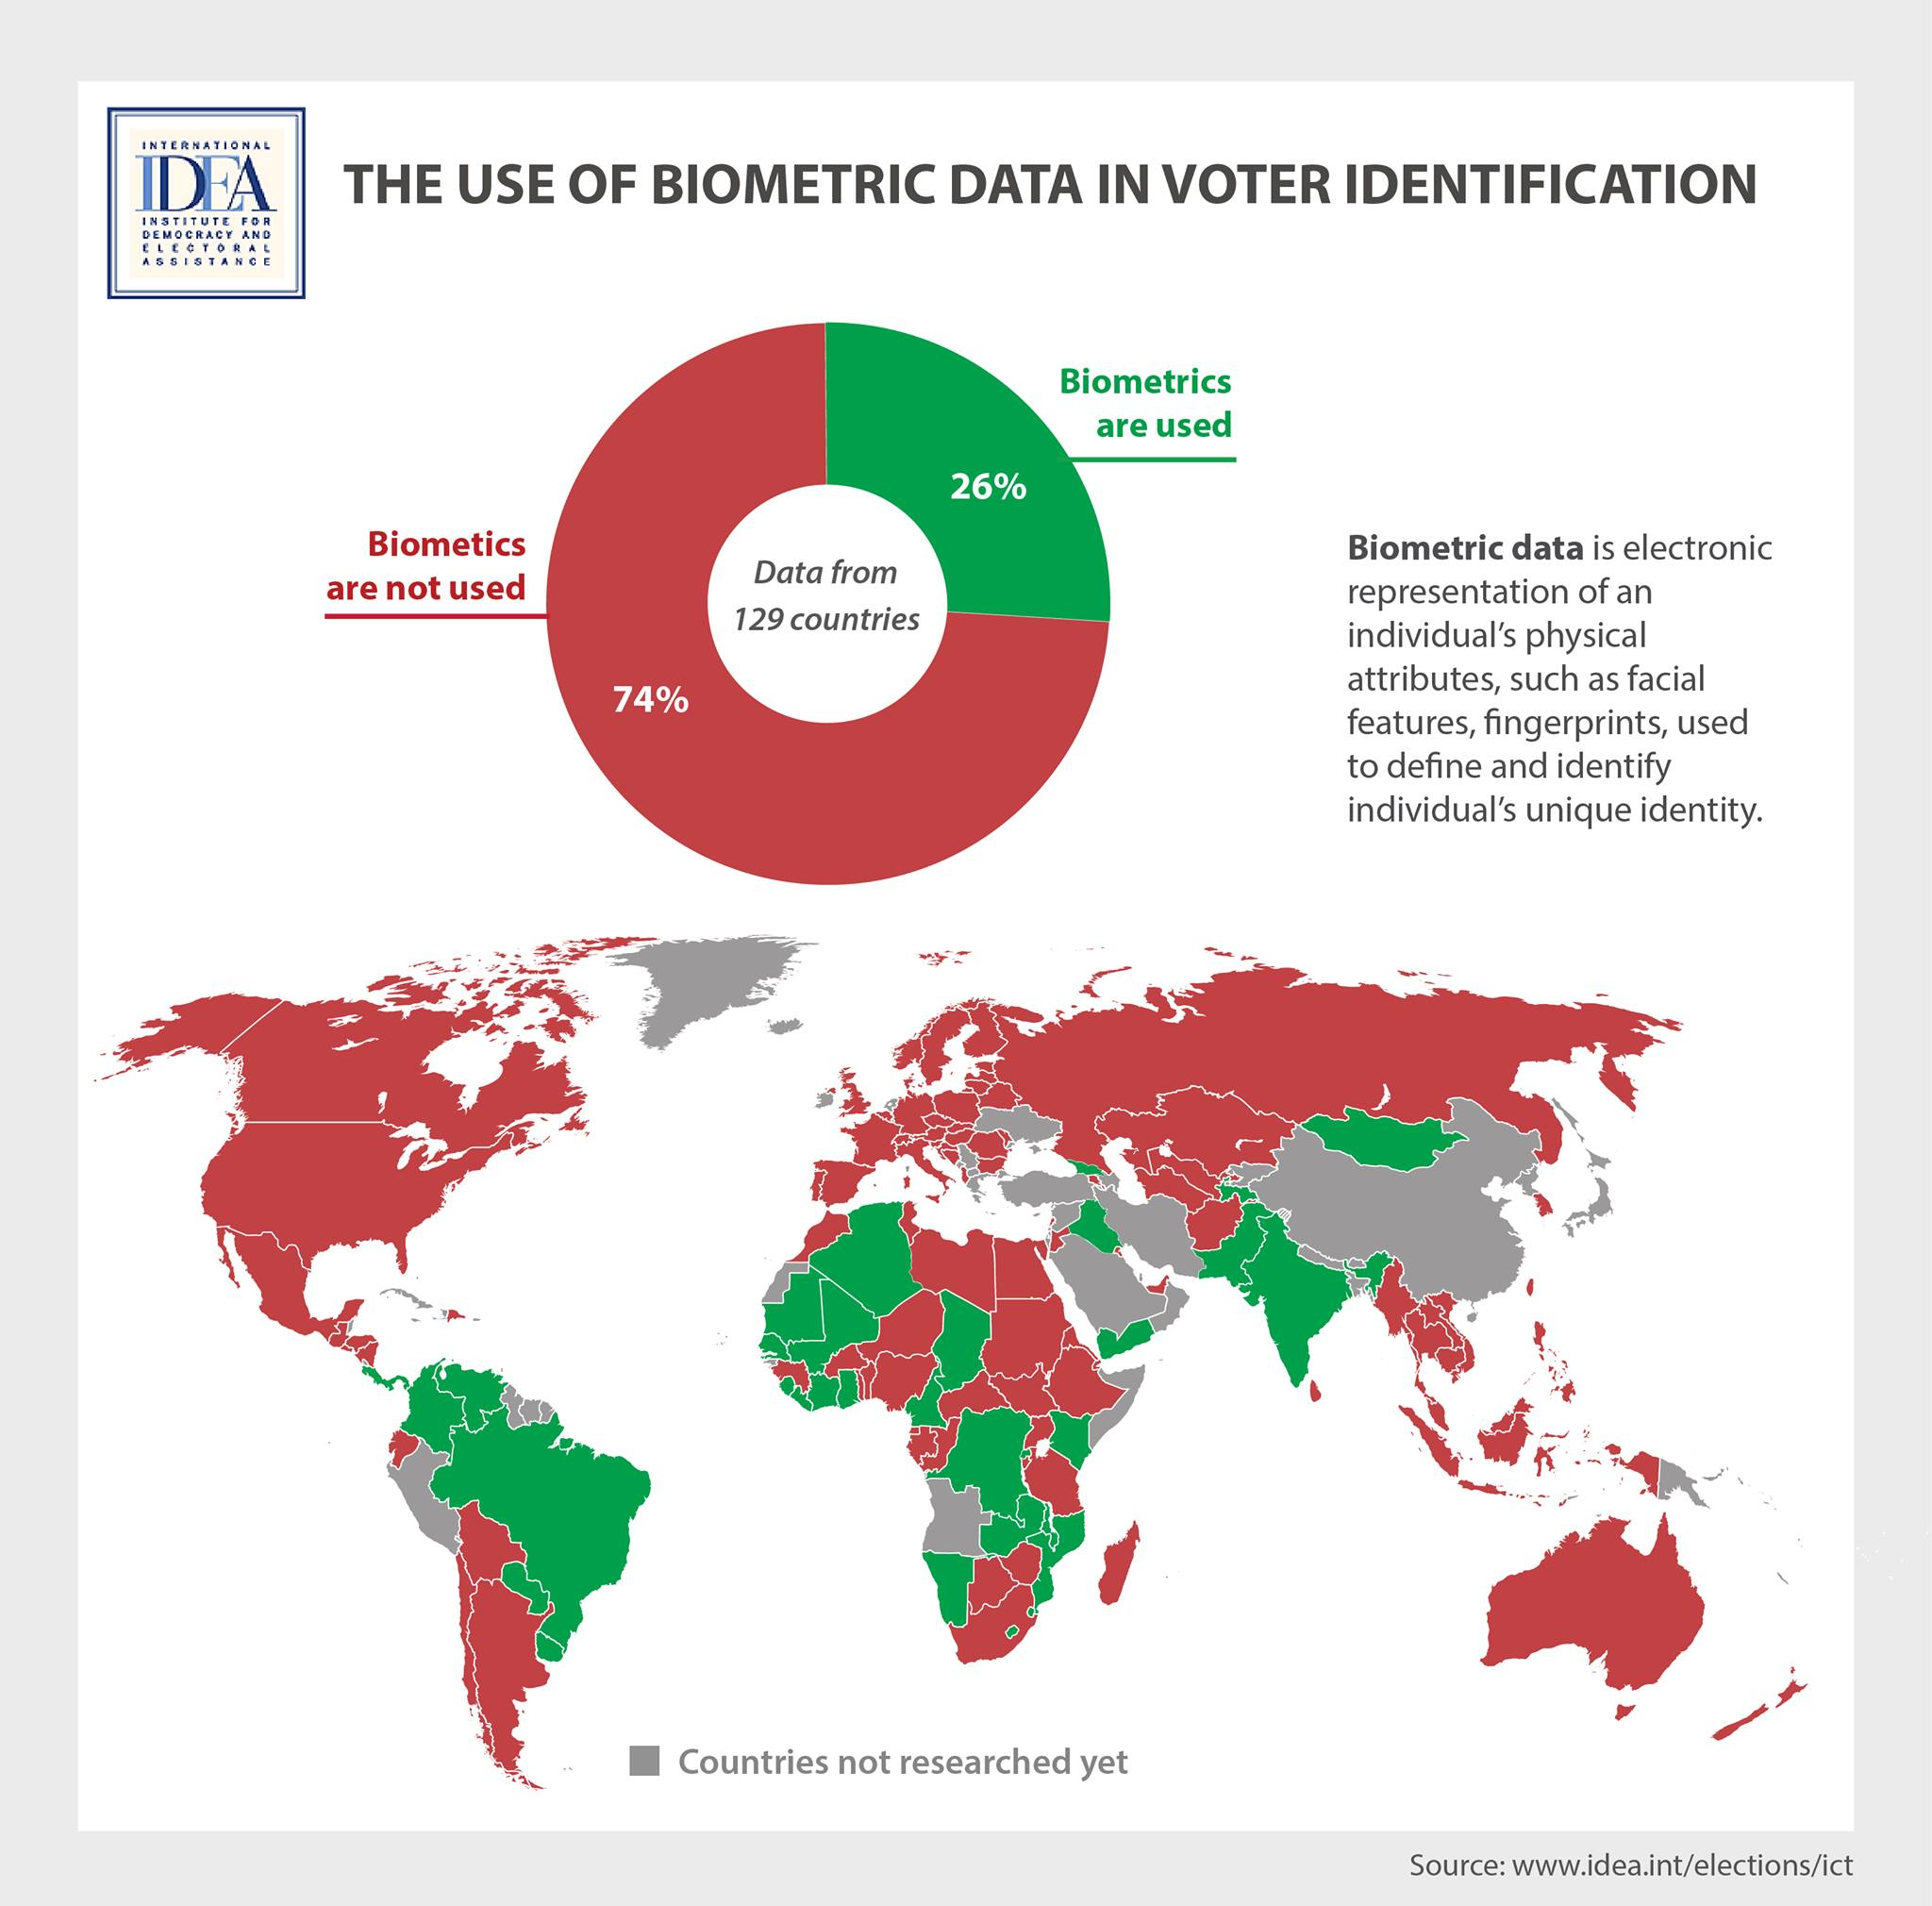 The use of biometric data in voter identification